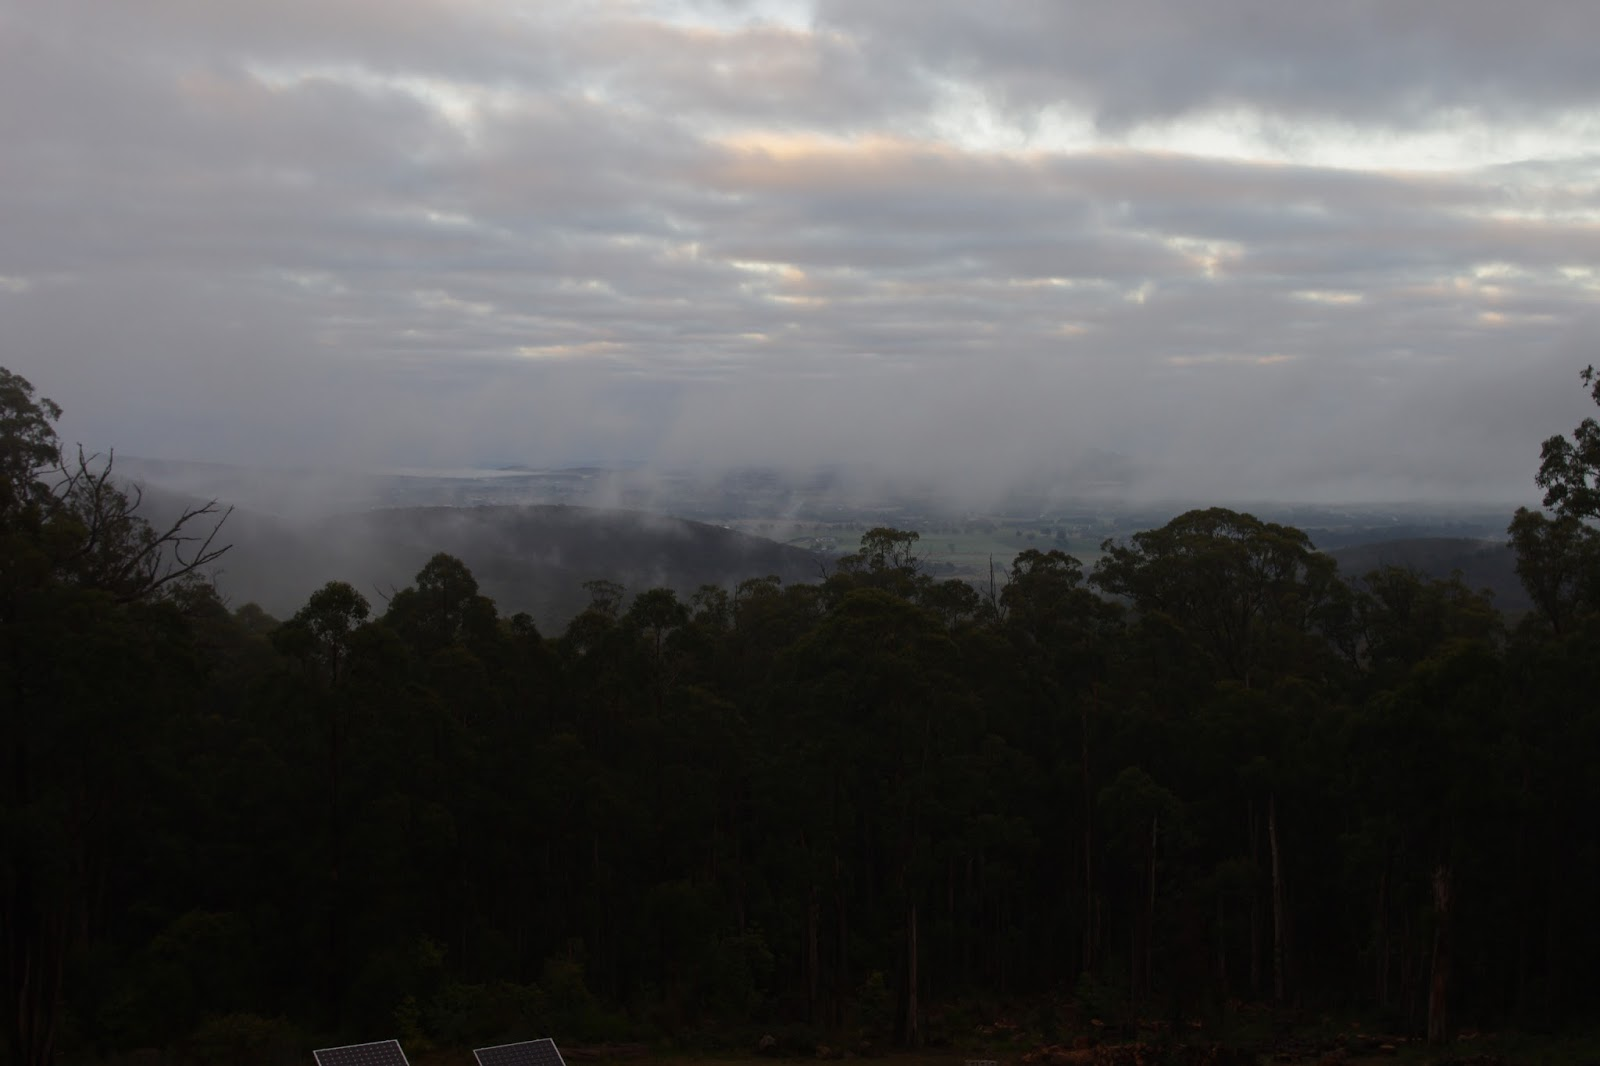 Mist rises over the valley as humidity is well over 90%